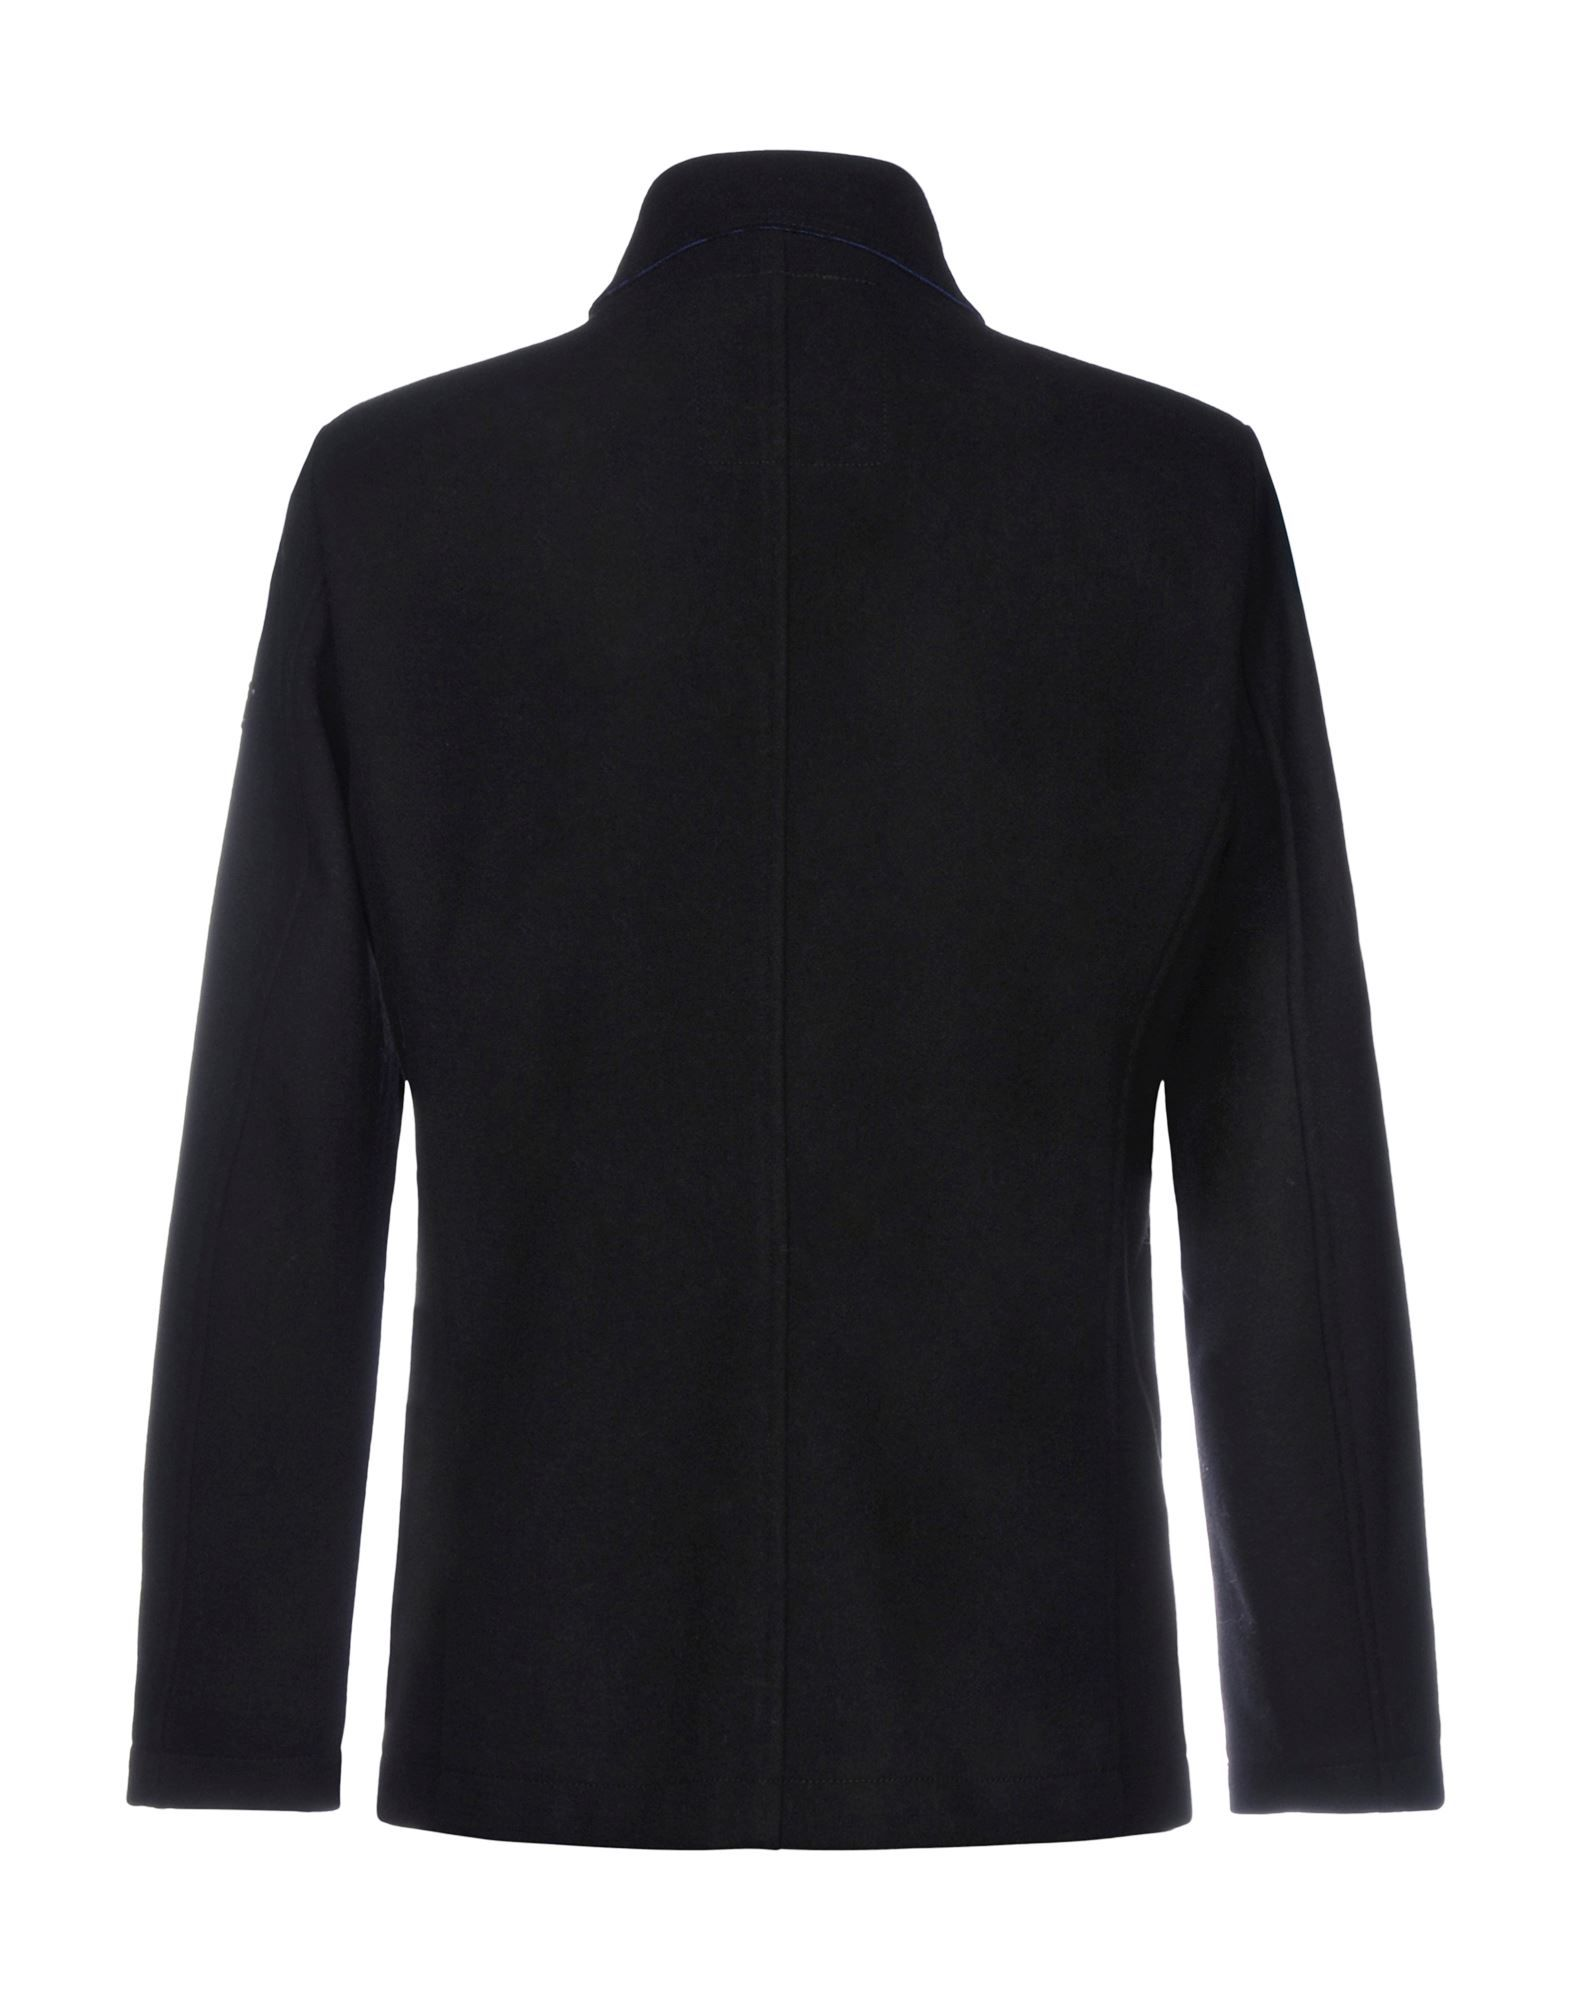 Armani Jeans Black Wool Double Breasted Coat